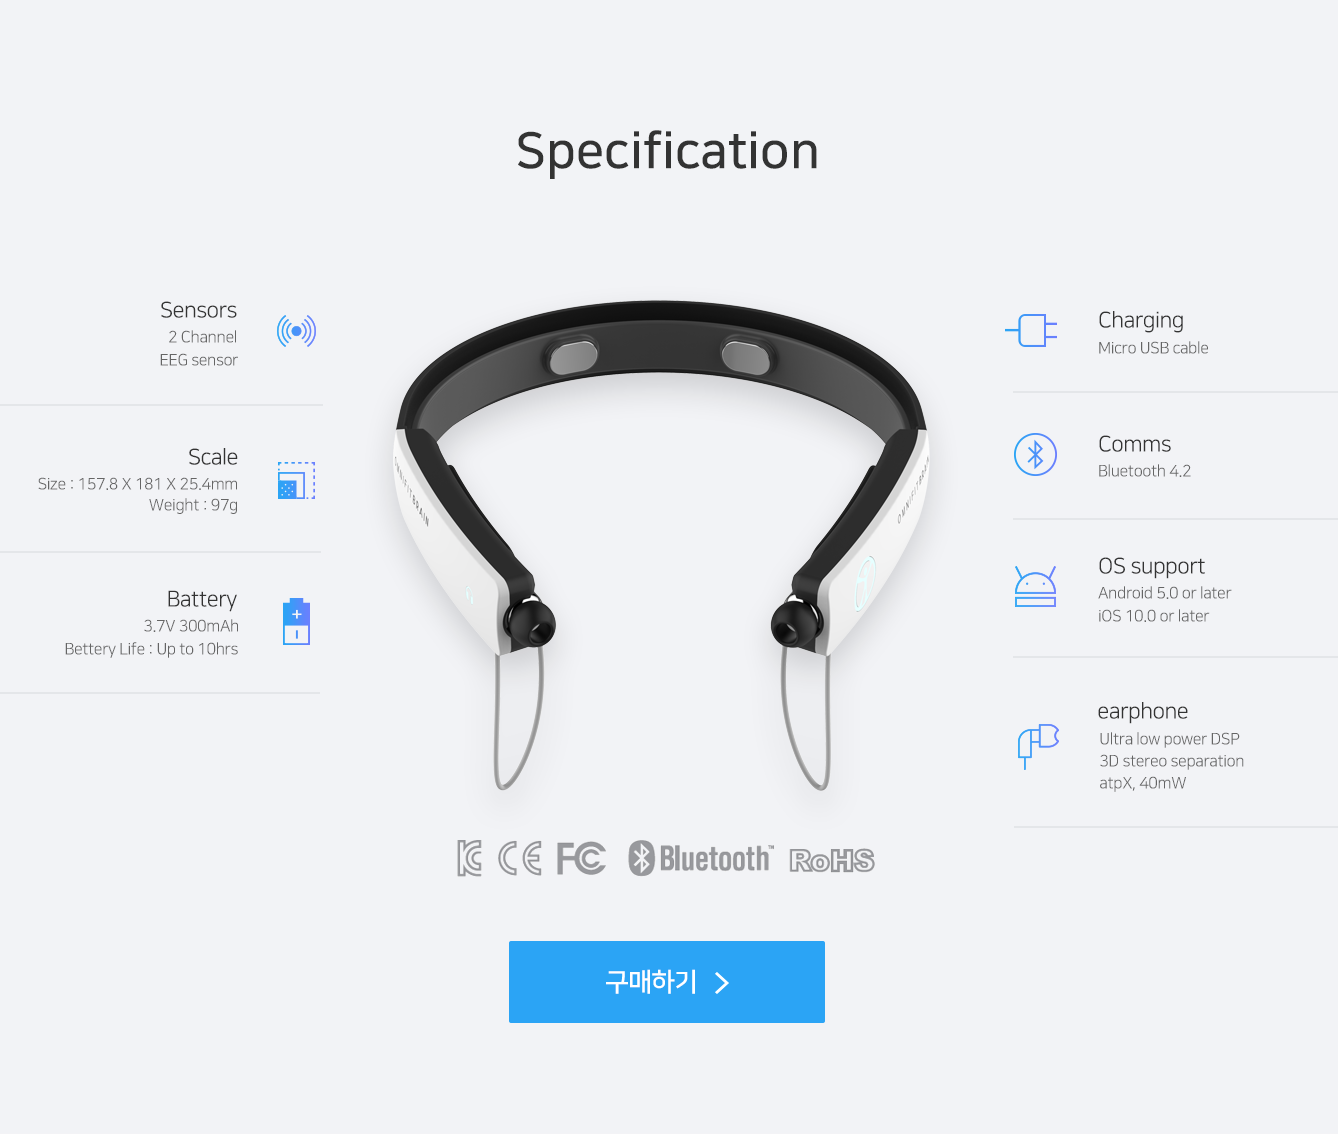 Specification *senser : 2 Channel EEG sensor *Size : 157.8 X 181 X 25.4mm *Weight : 97g *Bettery : 3.7V / 300mAh, Li-Poly (Battery Life_up to 10hrs) *earphone : Ultra low power DSP 3D stereo separation atpX, 40mW